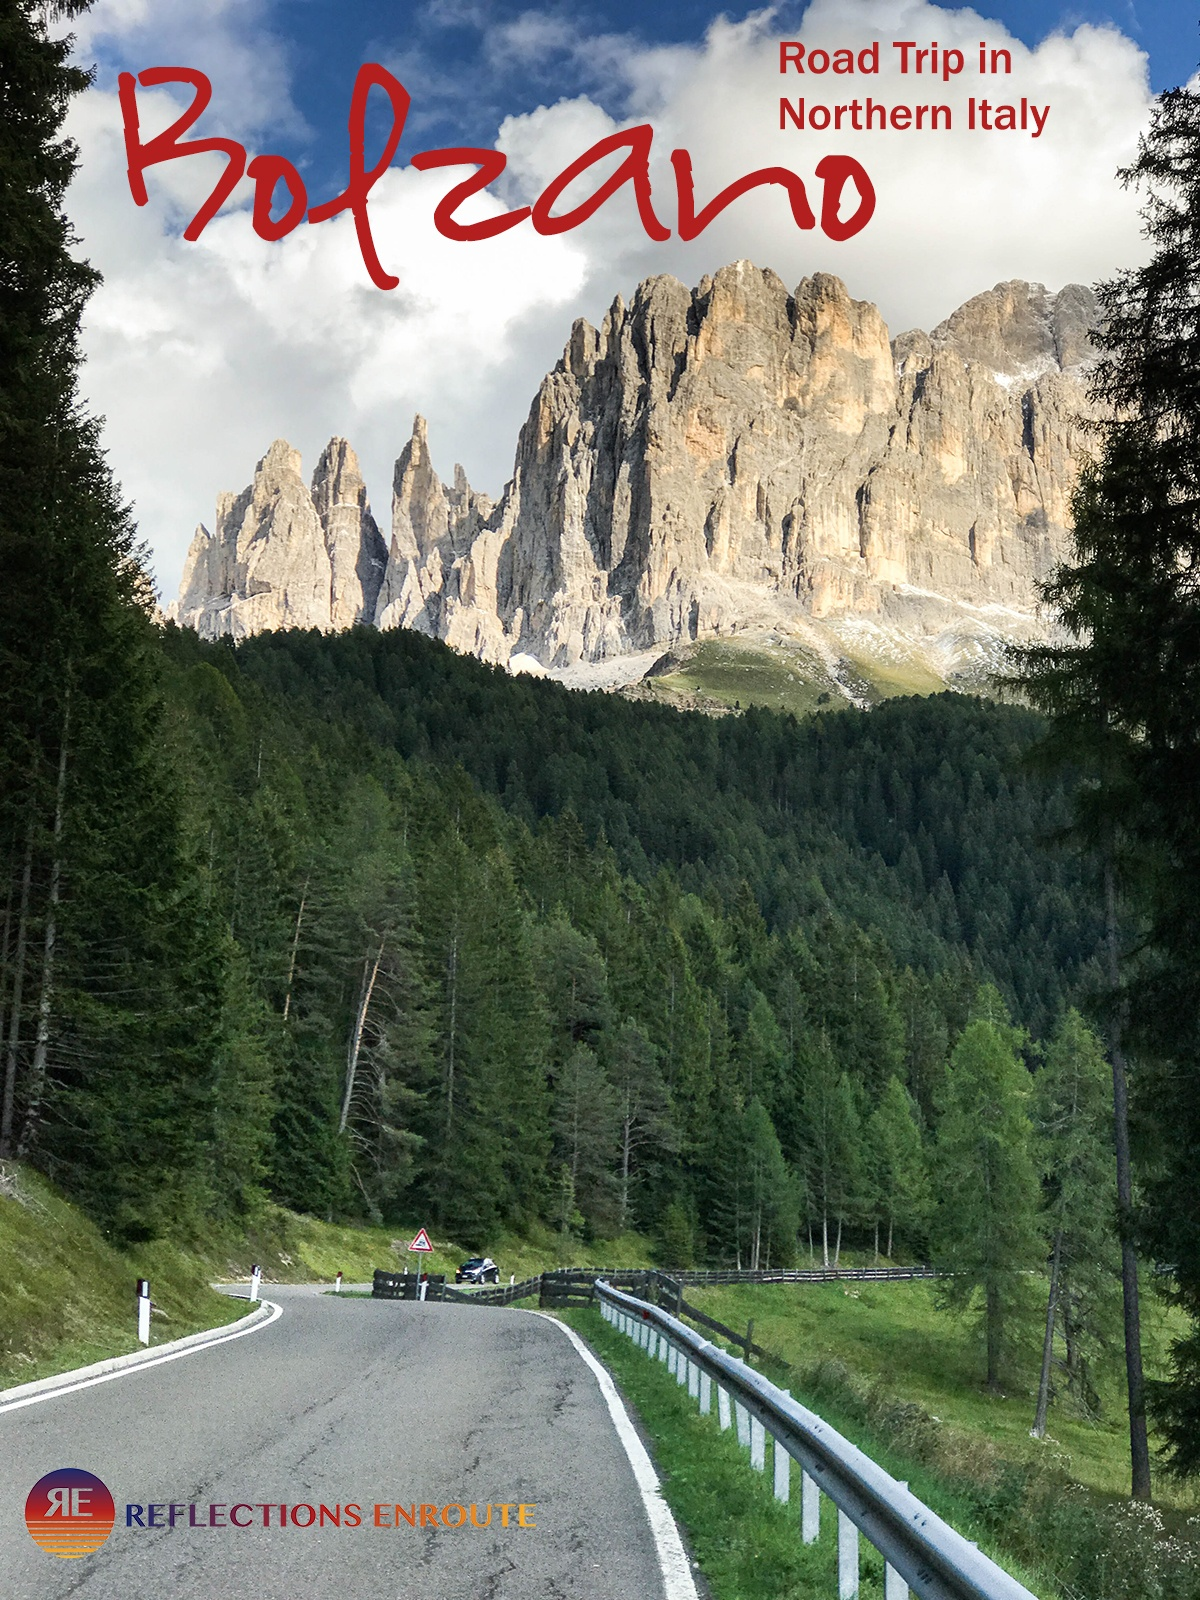 Beautiful mountain roads, Italian food and wine, and did I mention mountains? Bolzano, Italy is the destination for you!